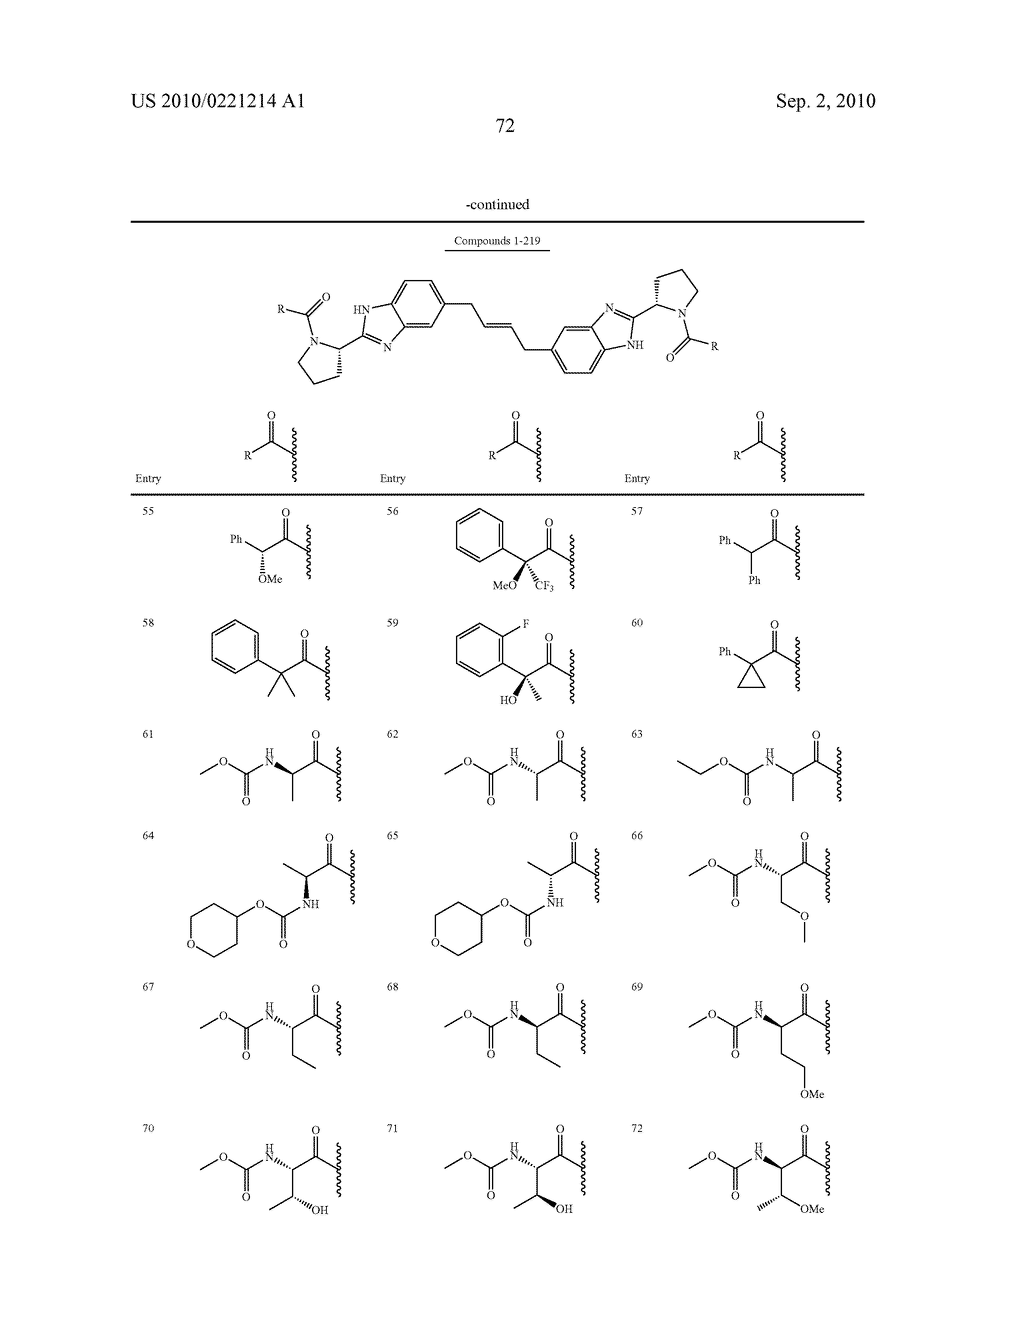 LINKED DIBENZIMIDAZOLE DERIVATIVES - diagram, schematic, and image 73